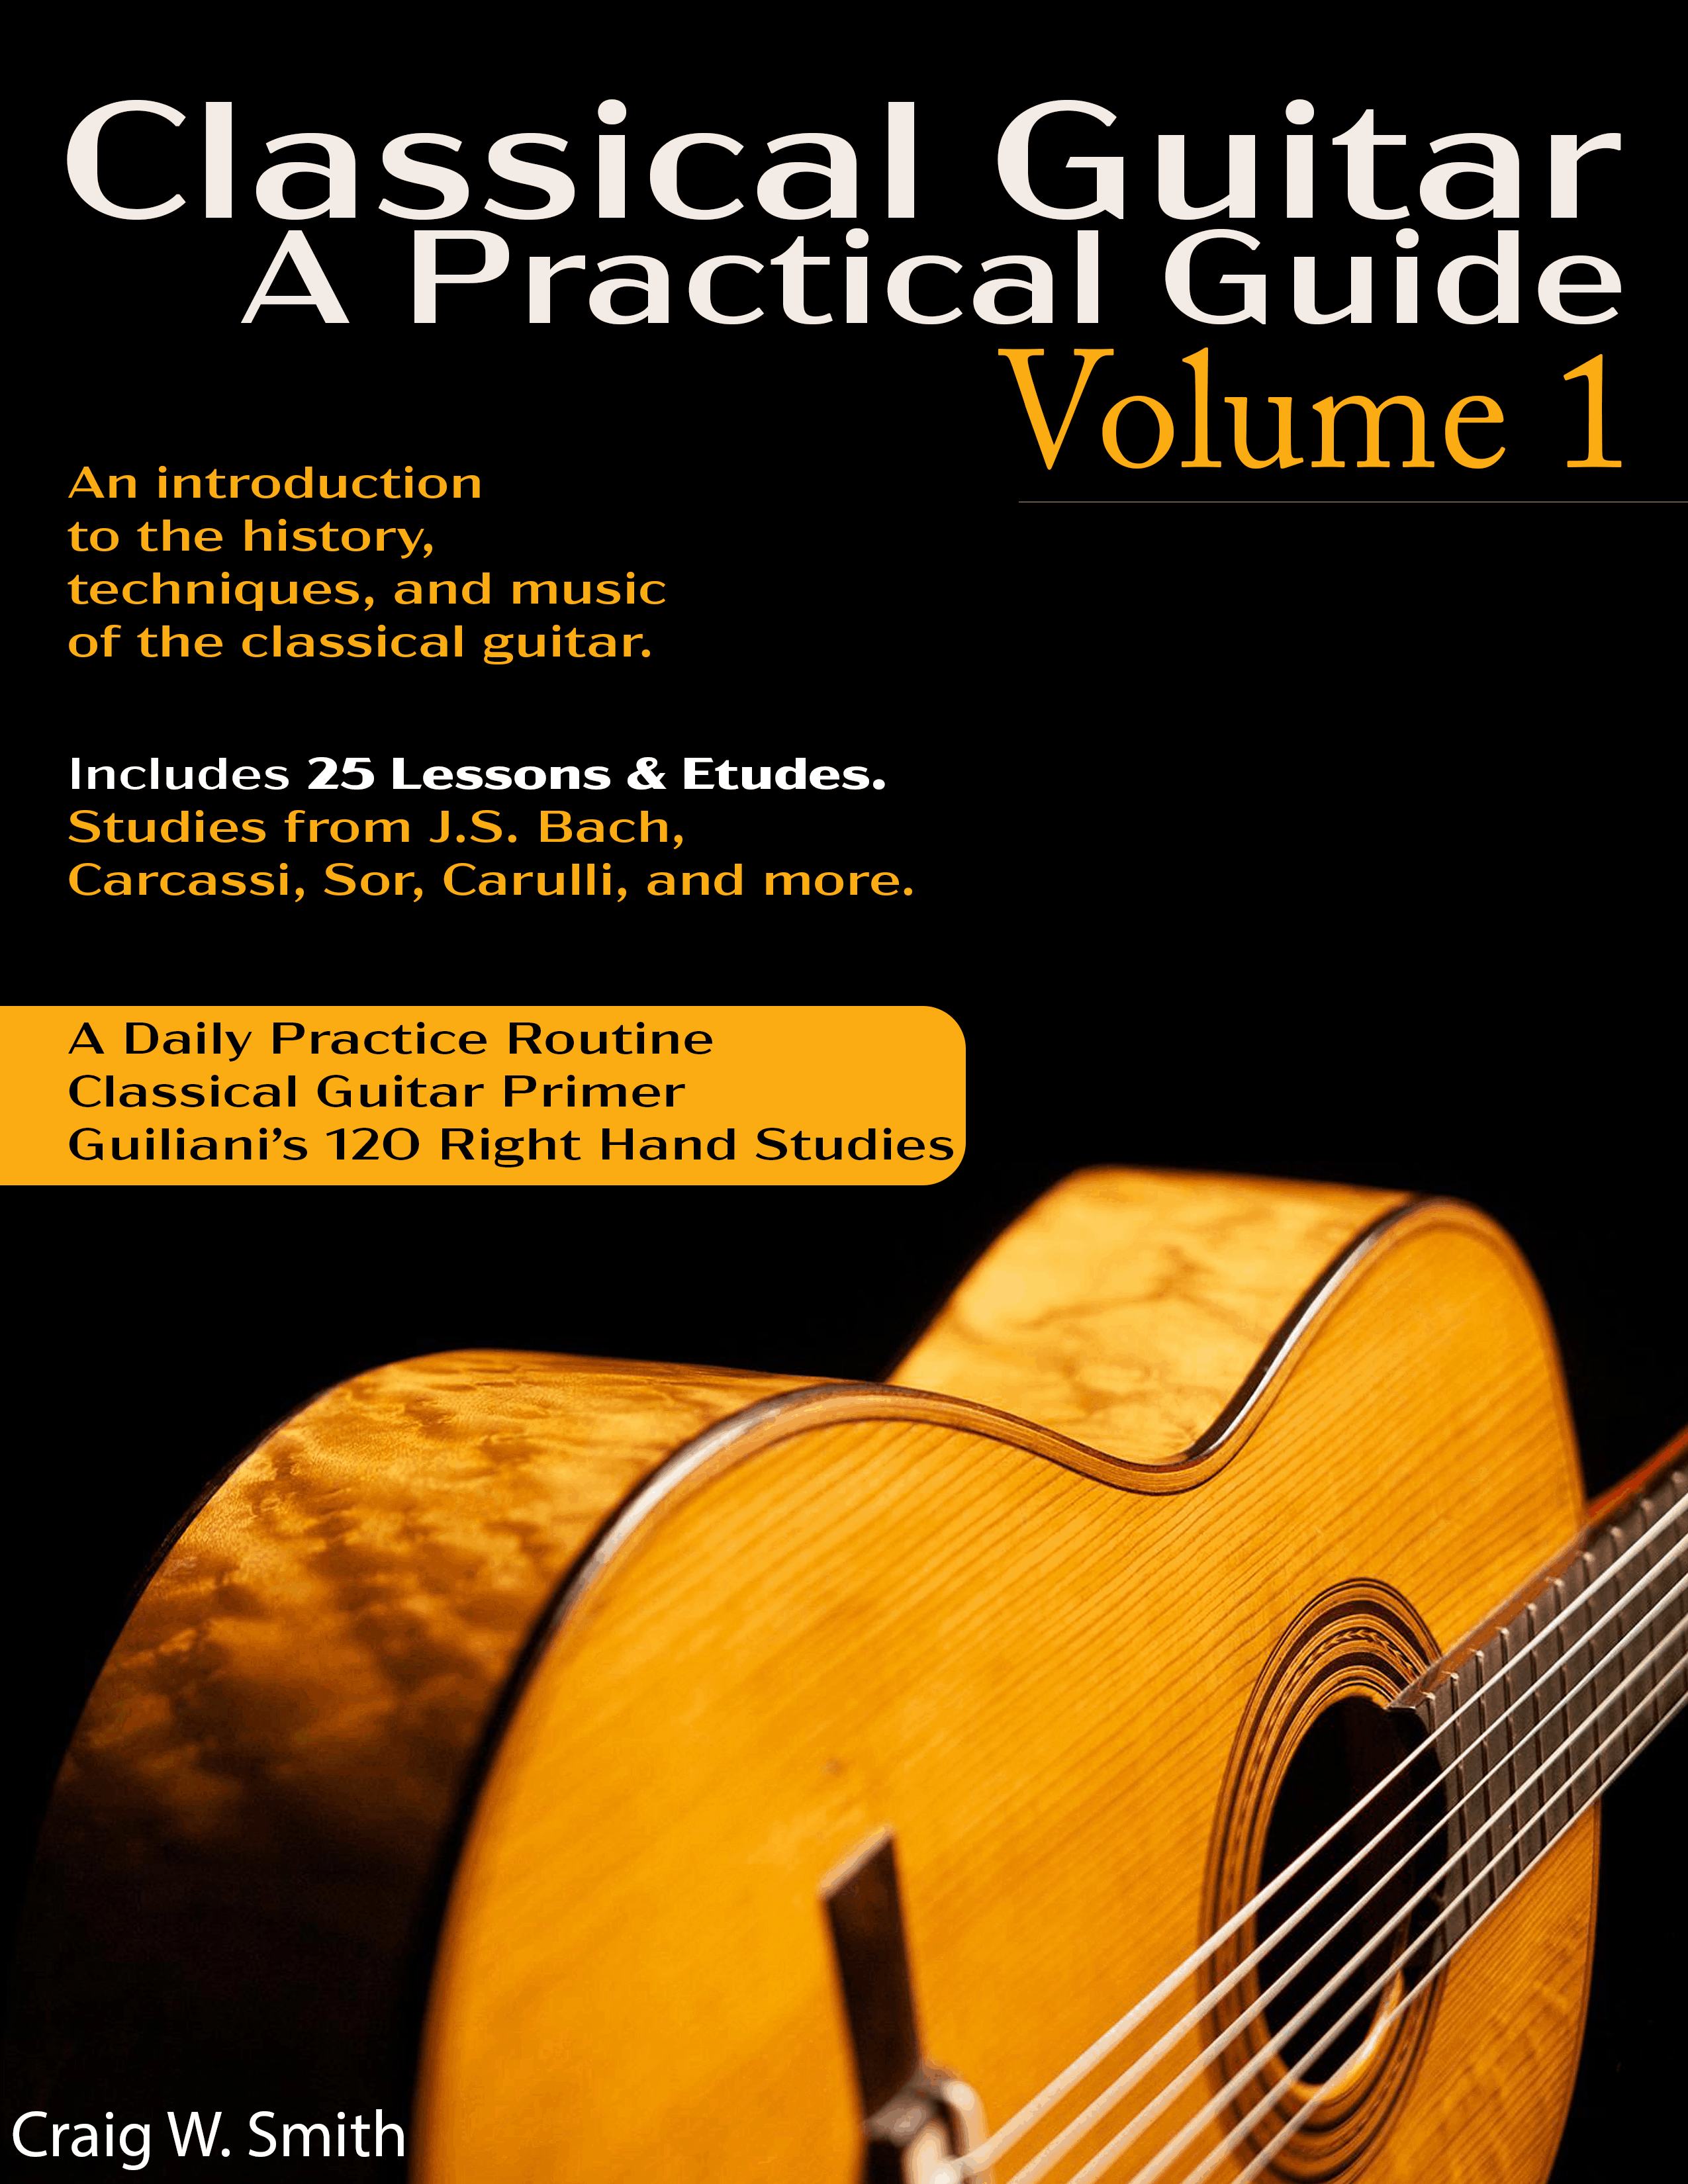 An introductionto the history, techniques, and music of the classical guitar. (129 pages TAB + Standard Notation) The music of J.S. Bach, Fernando Sor, Ferdinand Carulli, Matteo Carcassi, Dionisio Aguado and more